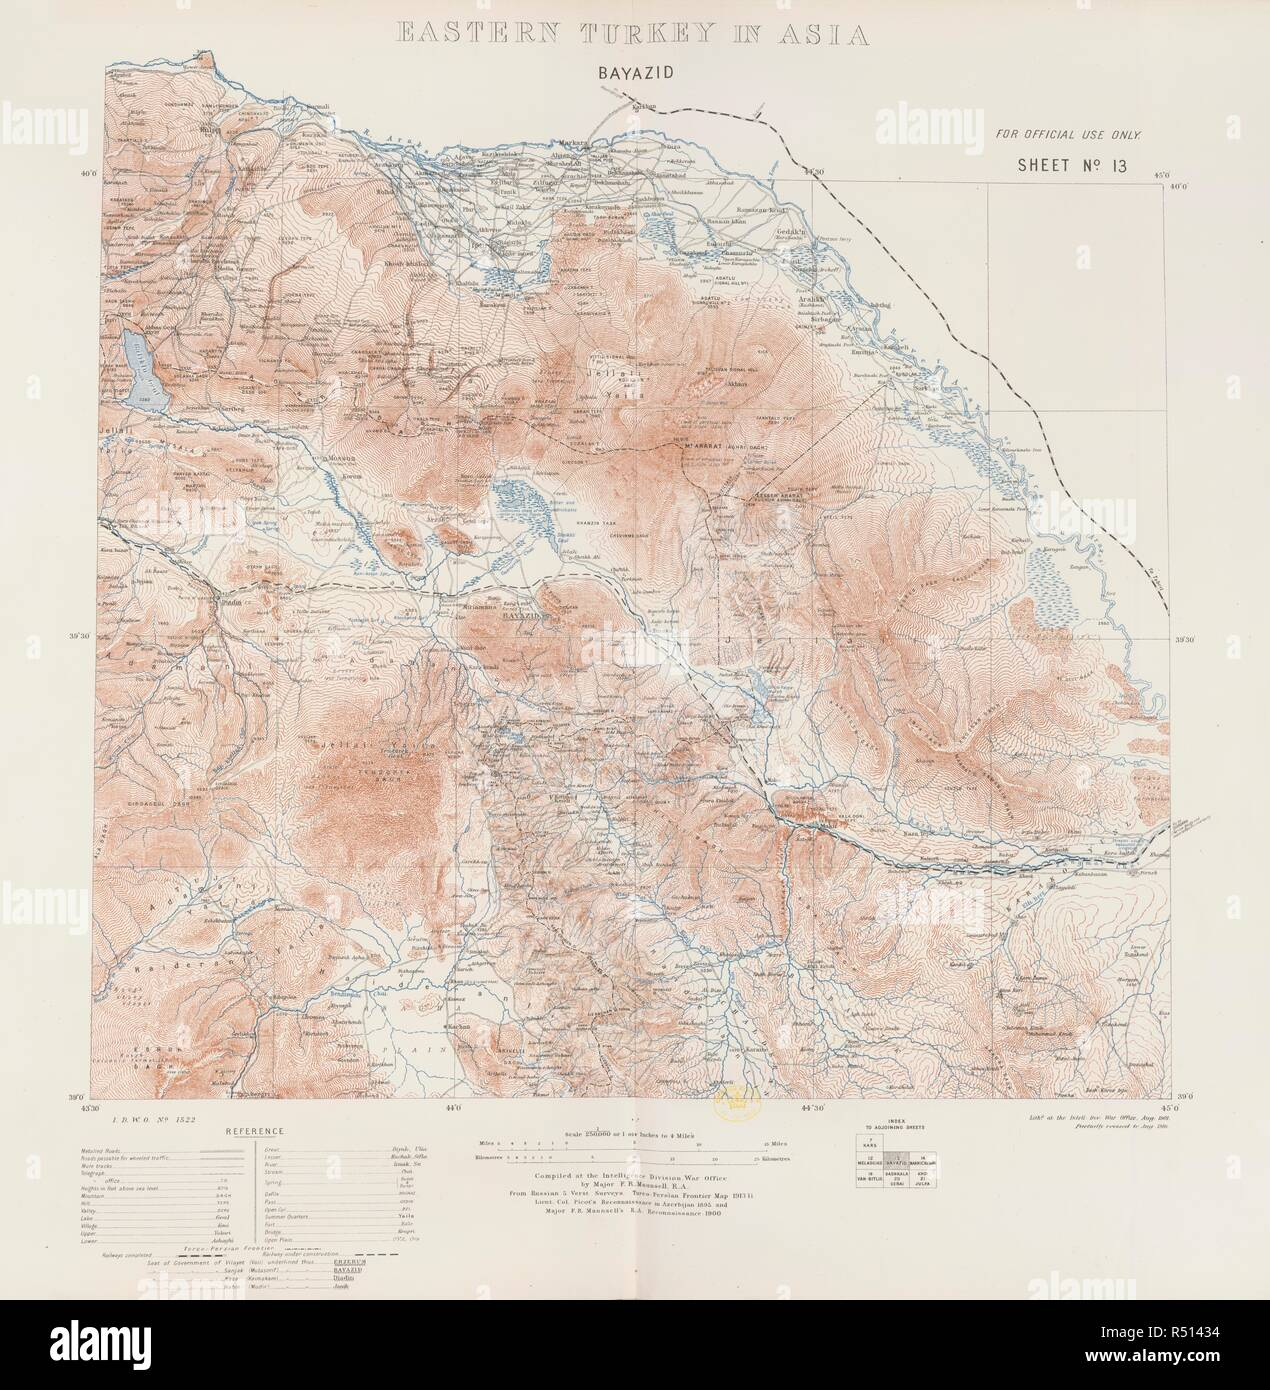 Eastern Turkey. Eastern Turkey in Asia. Scale, 1 : 250,000, or 1.0. Map of Eastern Turkey.  Image taken from Eastern Turkey in Asia. Scale, 1 : 250,000, or 1.014 inches to 4 miles. Compiled at the Intelligence Division, War Office, by Major F.R. Maunsell, etc. . Source: Maps.152.d.2, sheet 13. - Stock Image